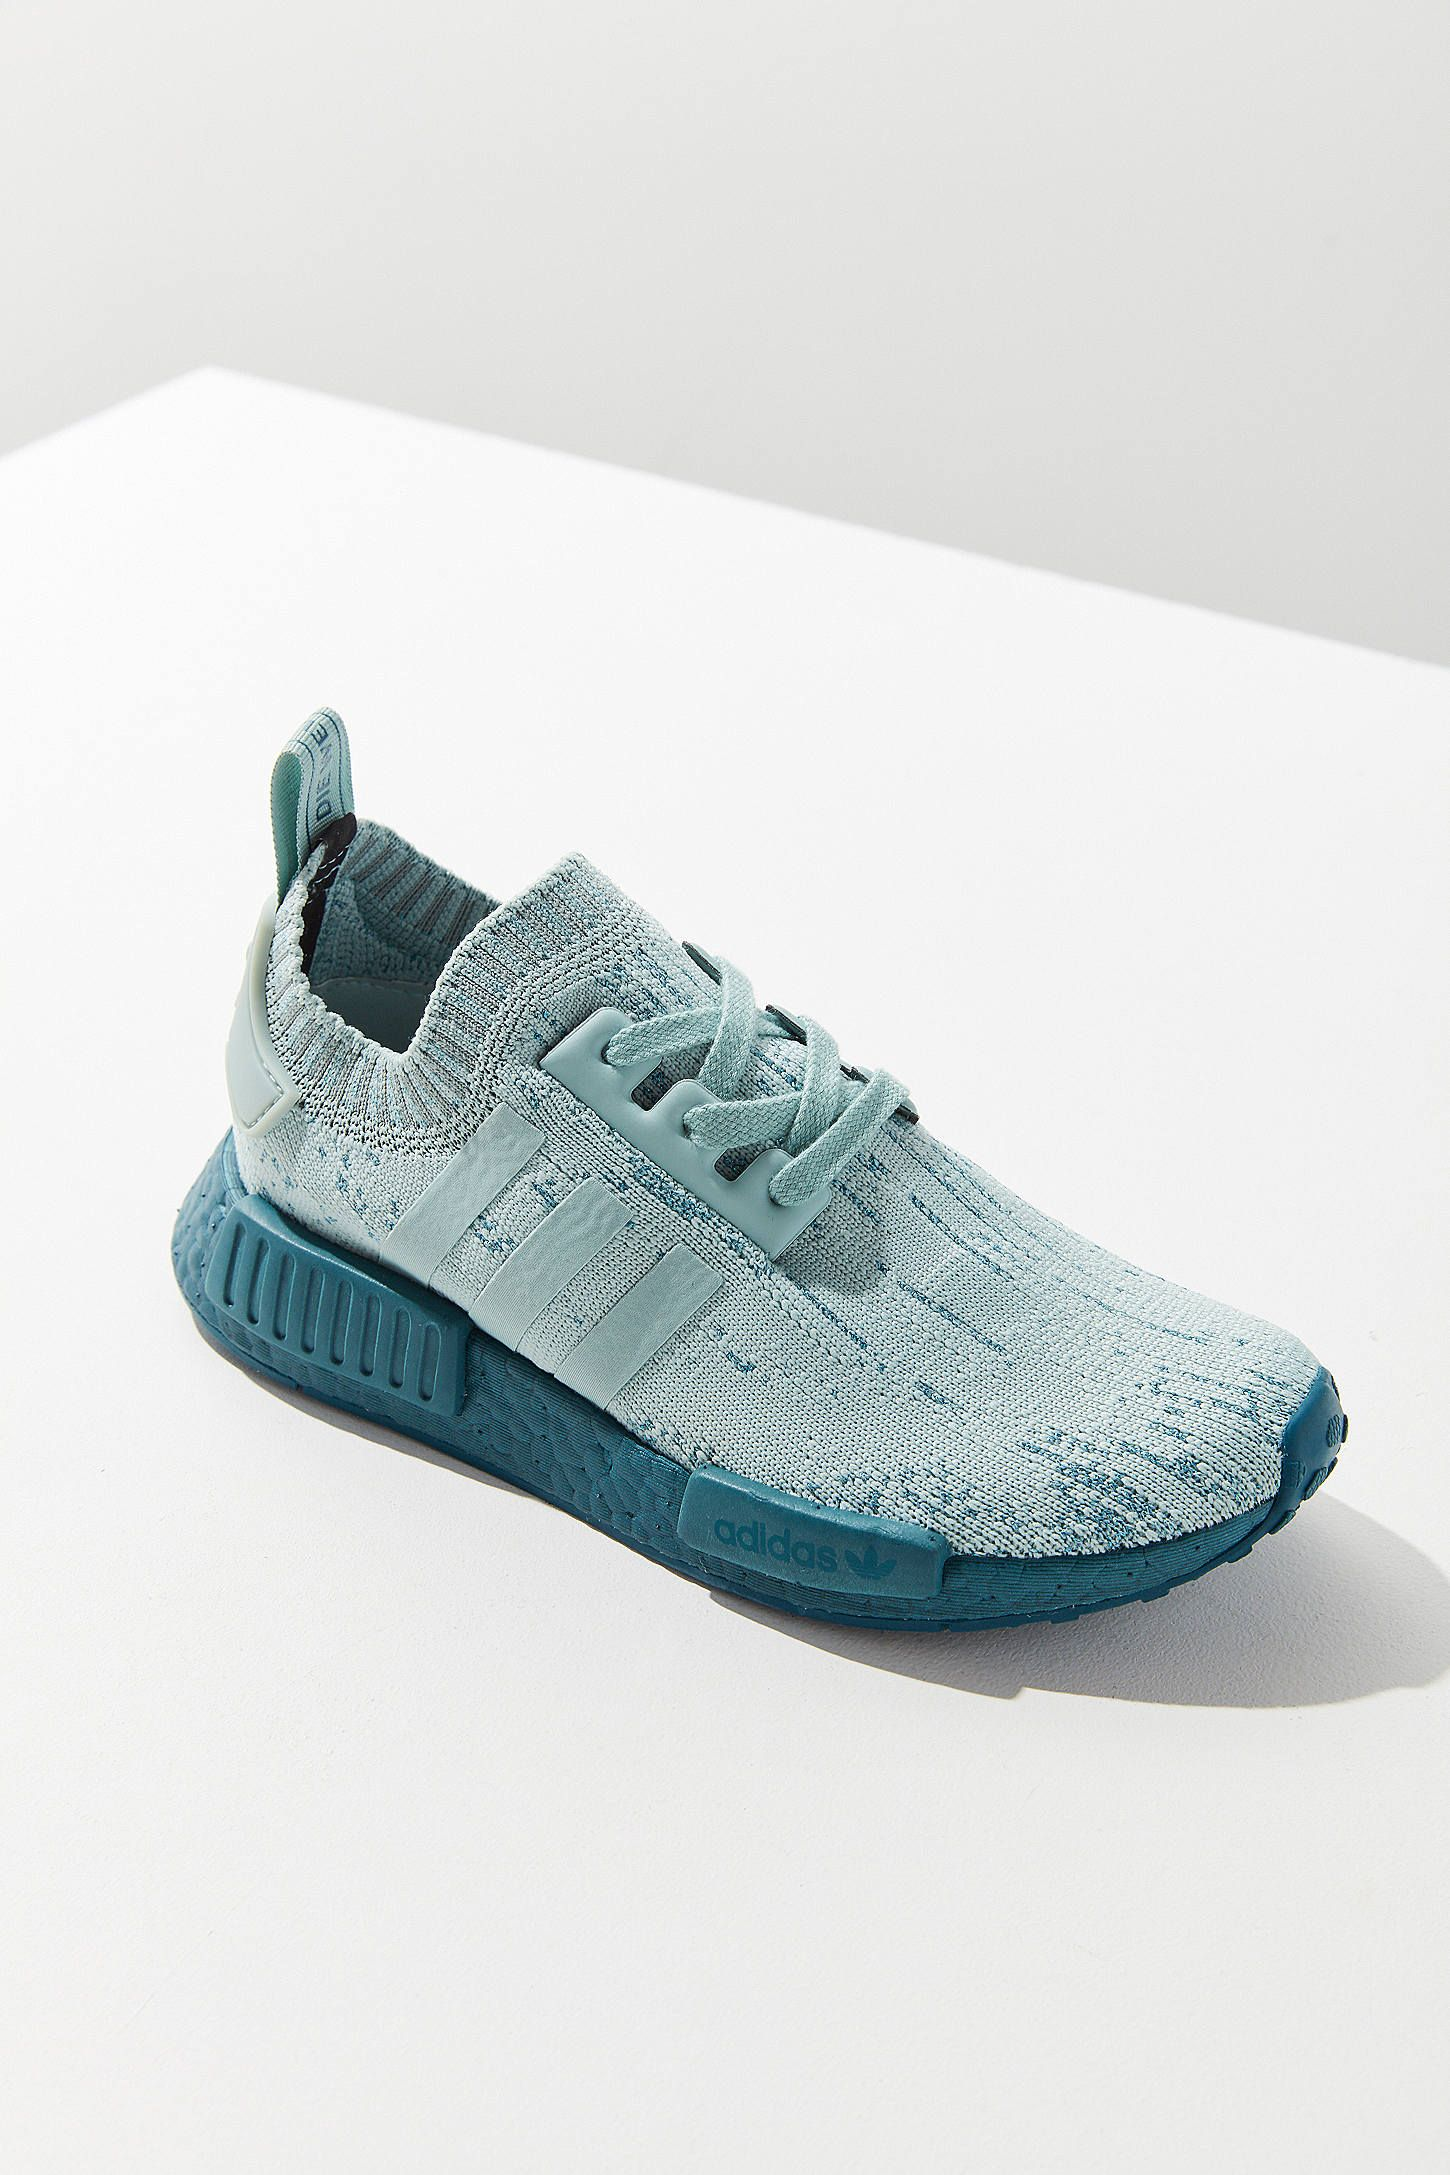 f6da9764ed1f Shop adidas Originals NMD R1 Primeknit Mint Sneaker at Urban Outfitters  today. We carry all the latest styles